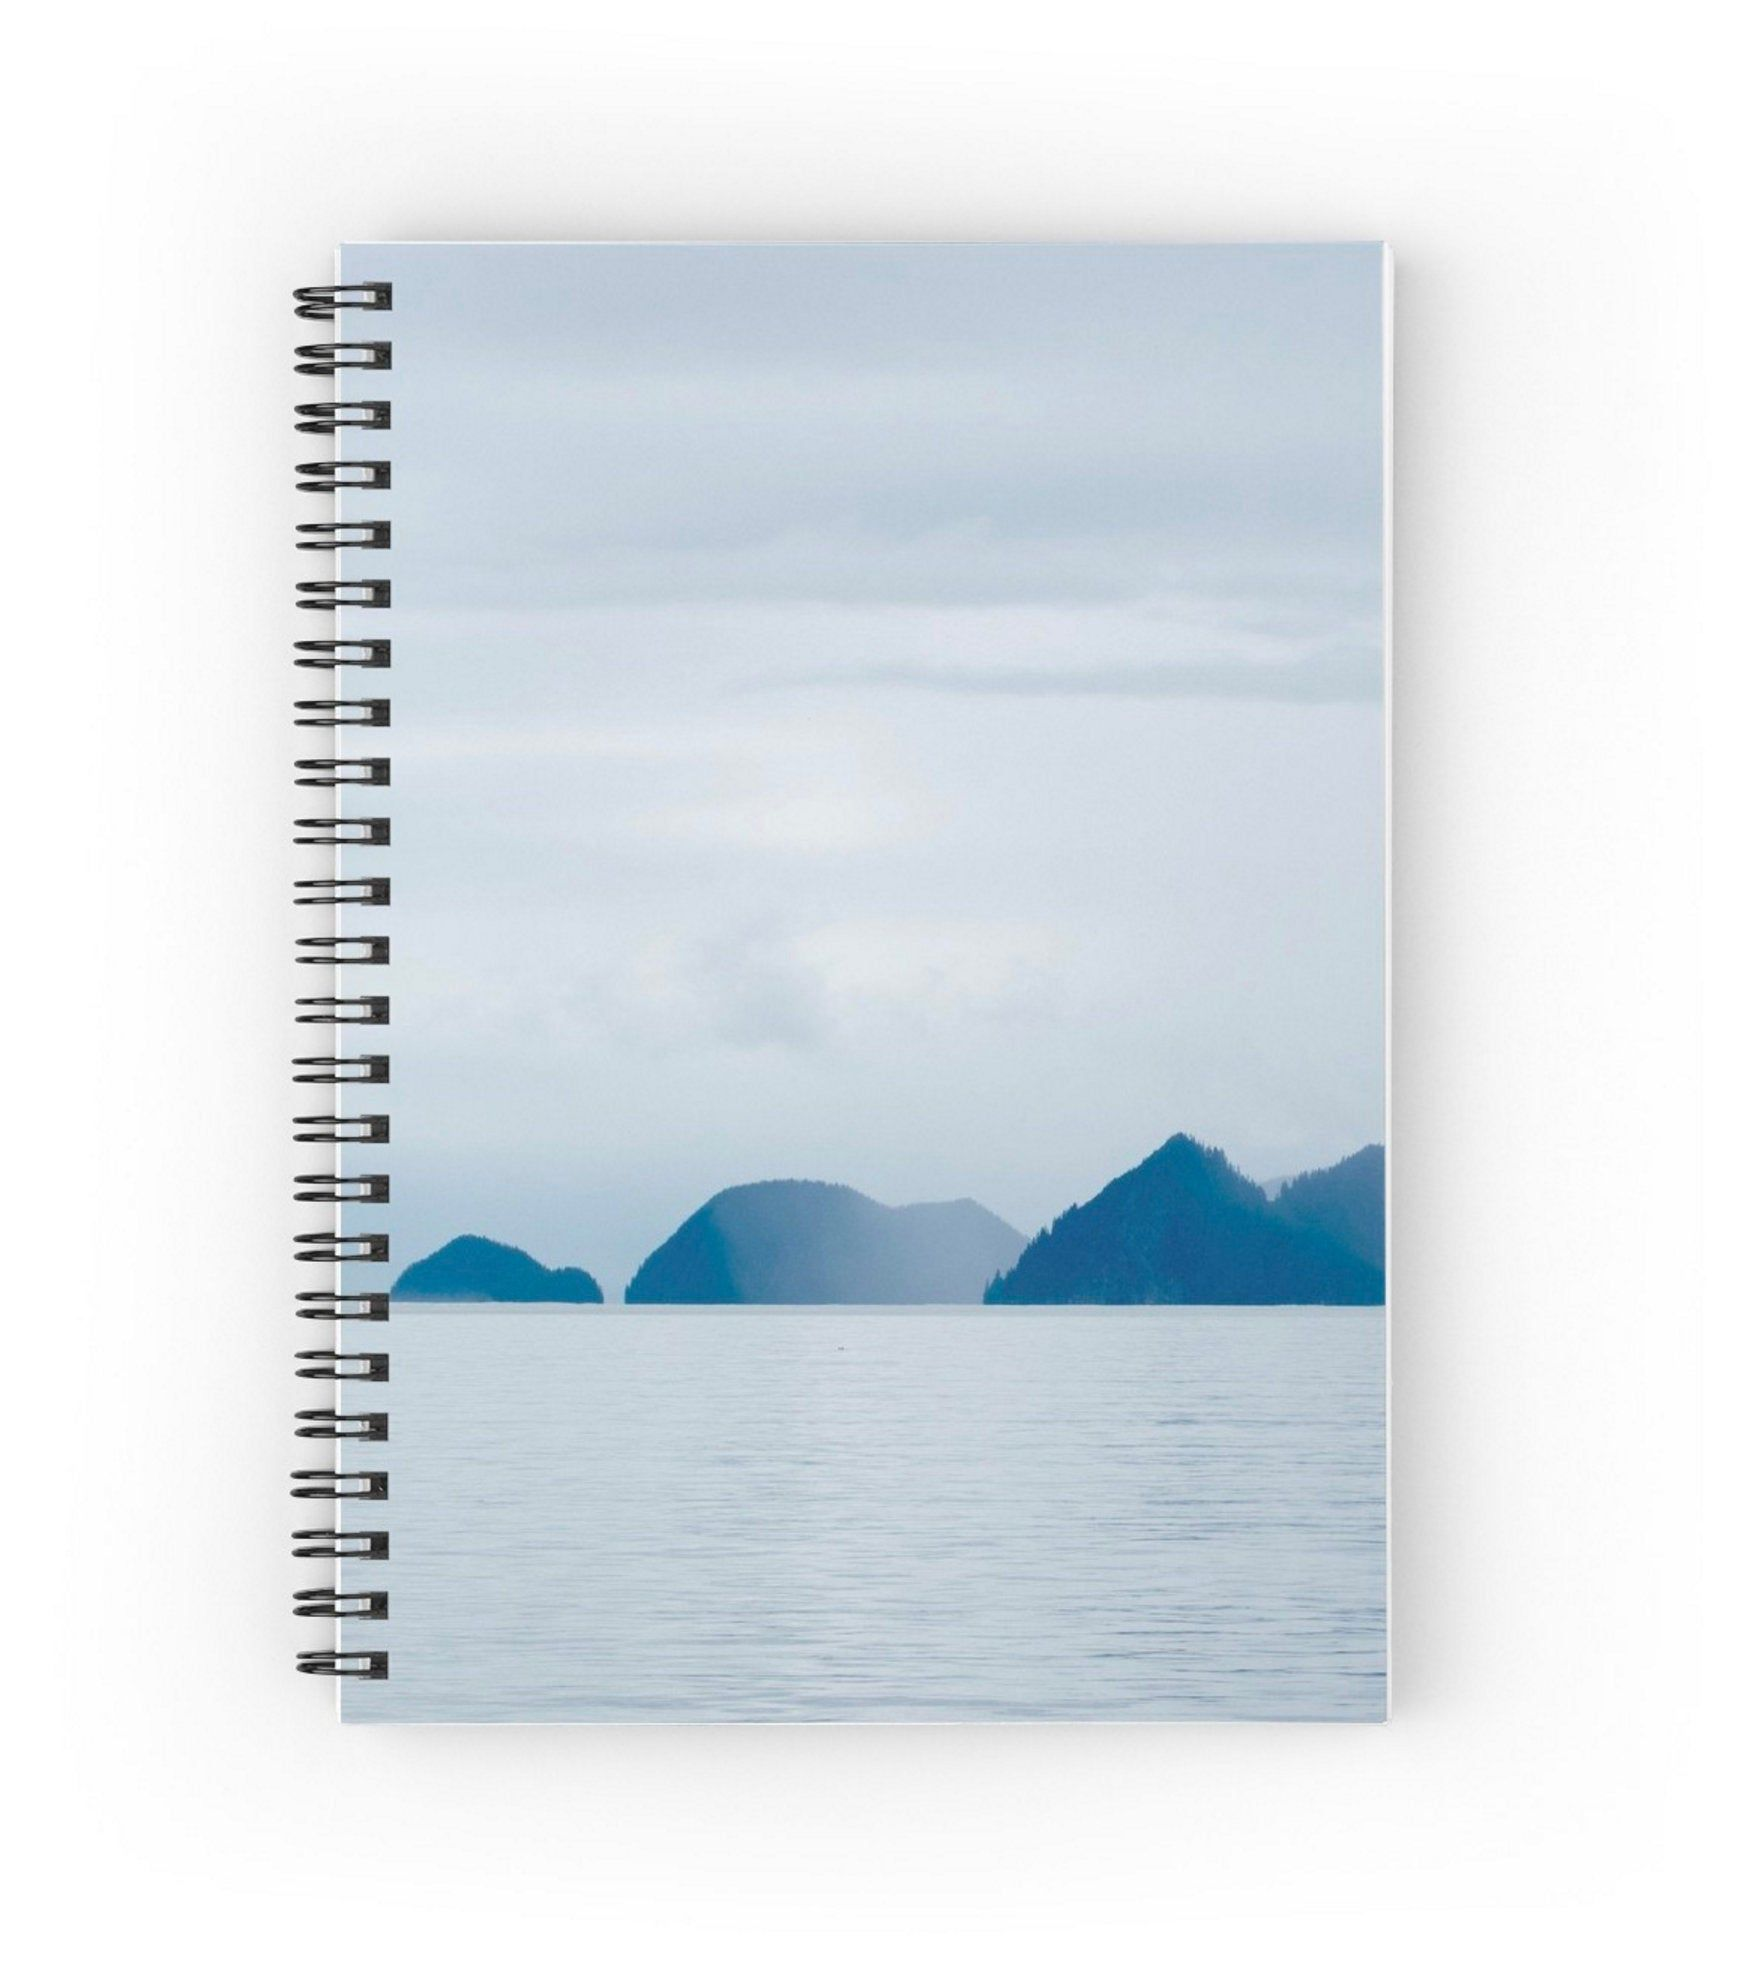 Nature Notebook Writing Gift For Writer Nature Journal Minimalist Gift Guest Book For Vacation House Nature Photo Spiral Notebook Diary In 2020 Nature Photos Nature Journal Nature Photography